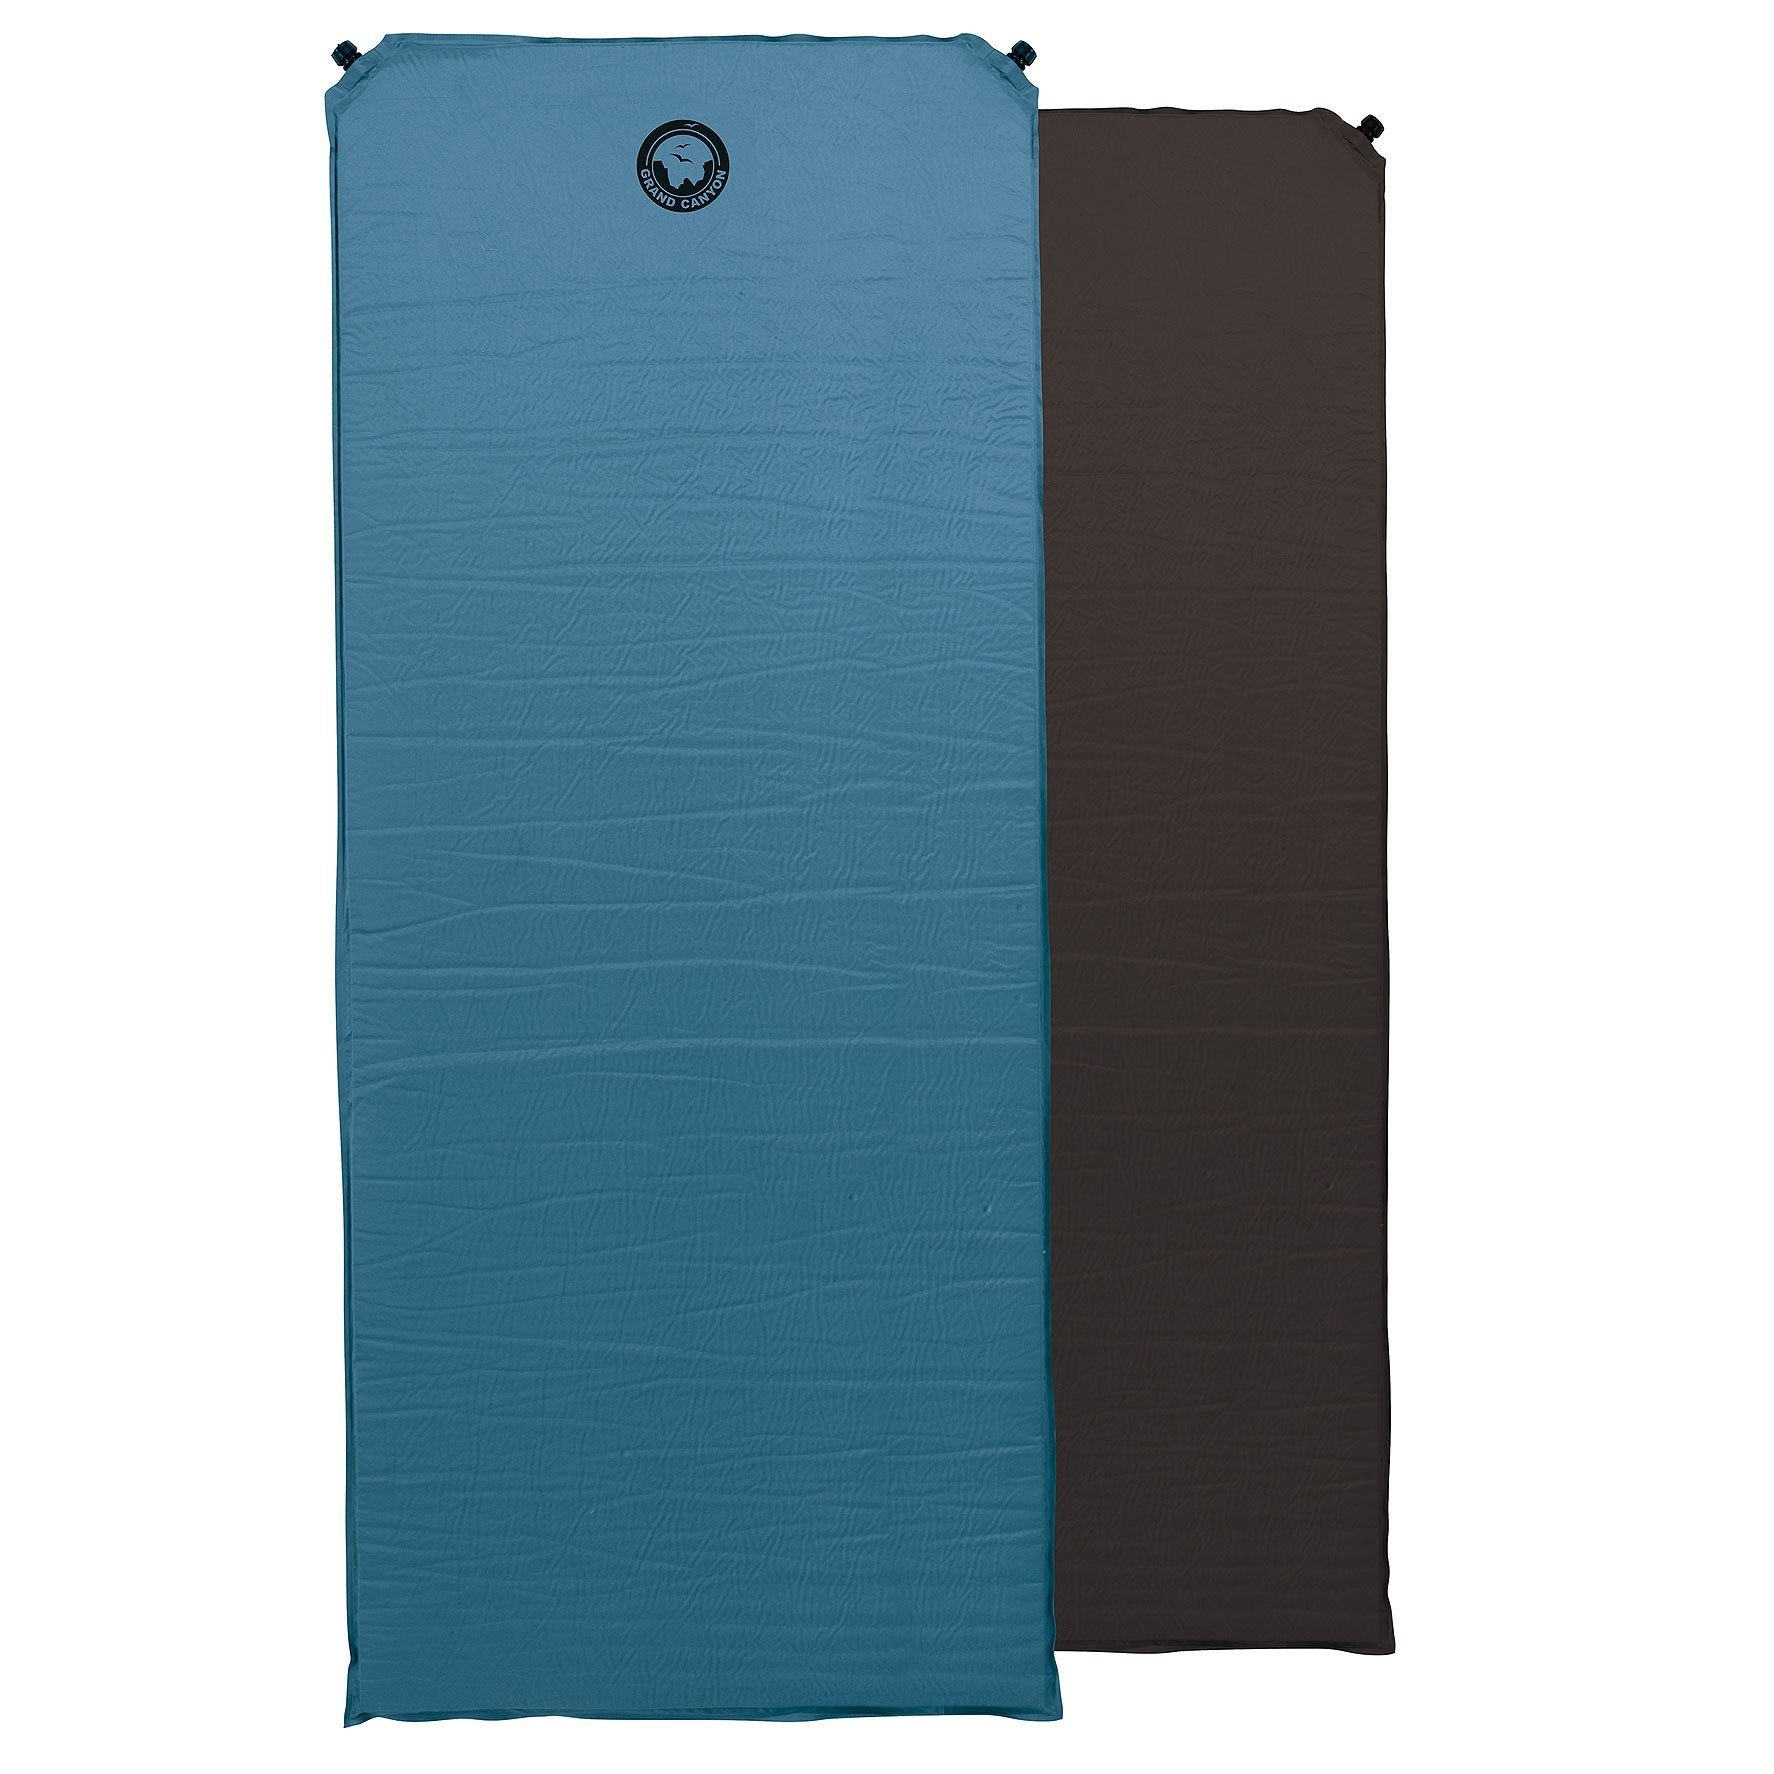 Grand Canyon Luftmatratze »Cruise 7.5 XW Self-Inflatable Mat«